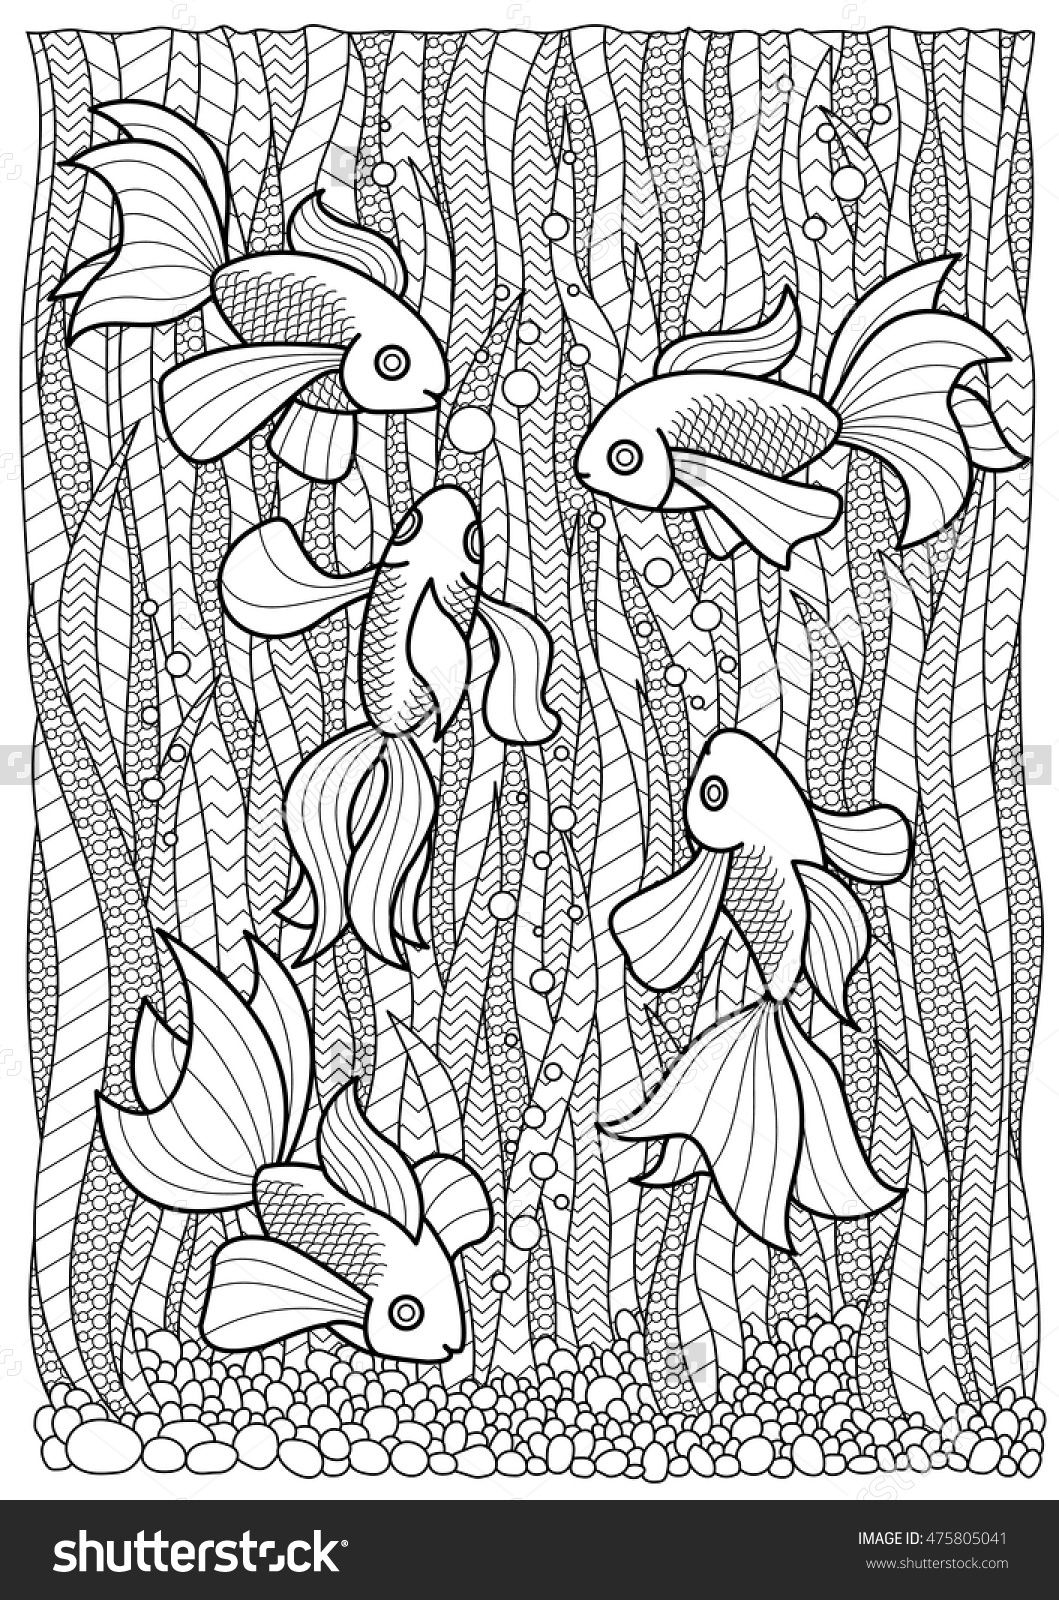 hand drawn marine coloring page fish swim in algae anti